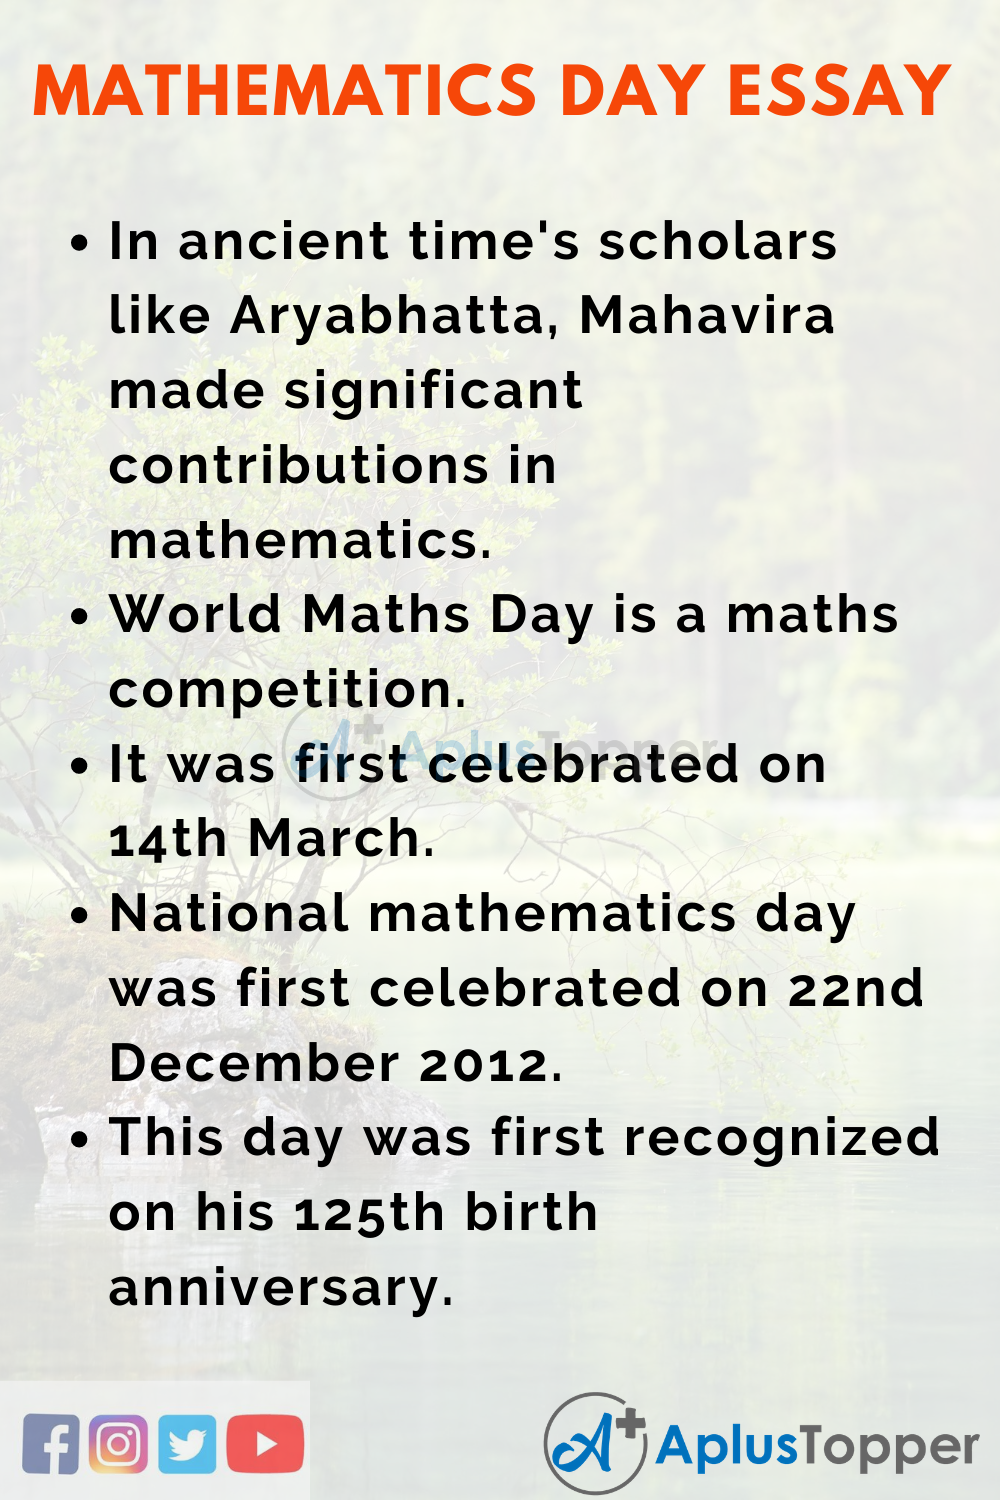 10 Lines On Mathematics Day Essay In English